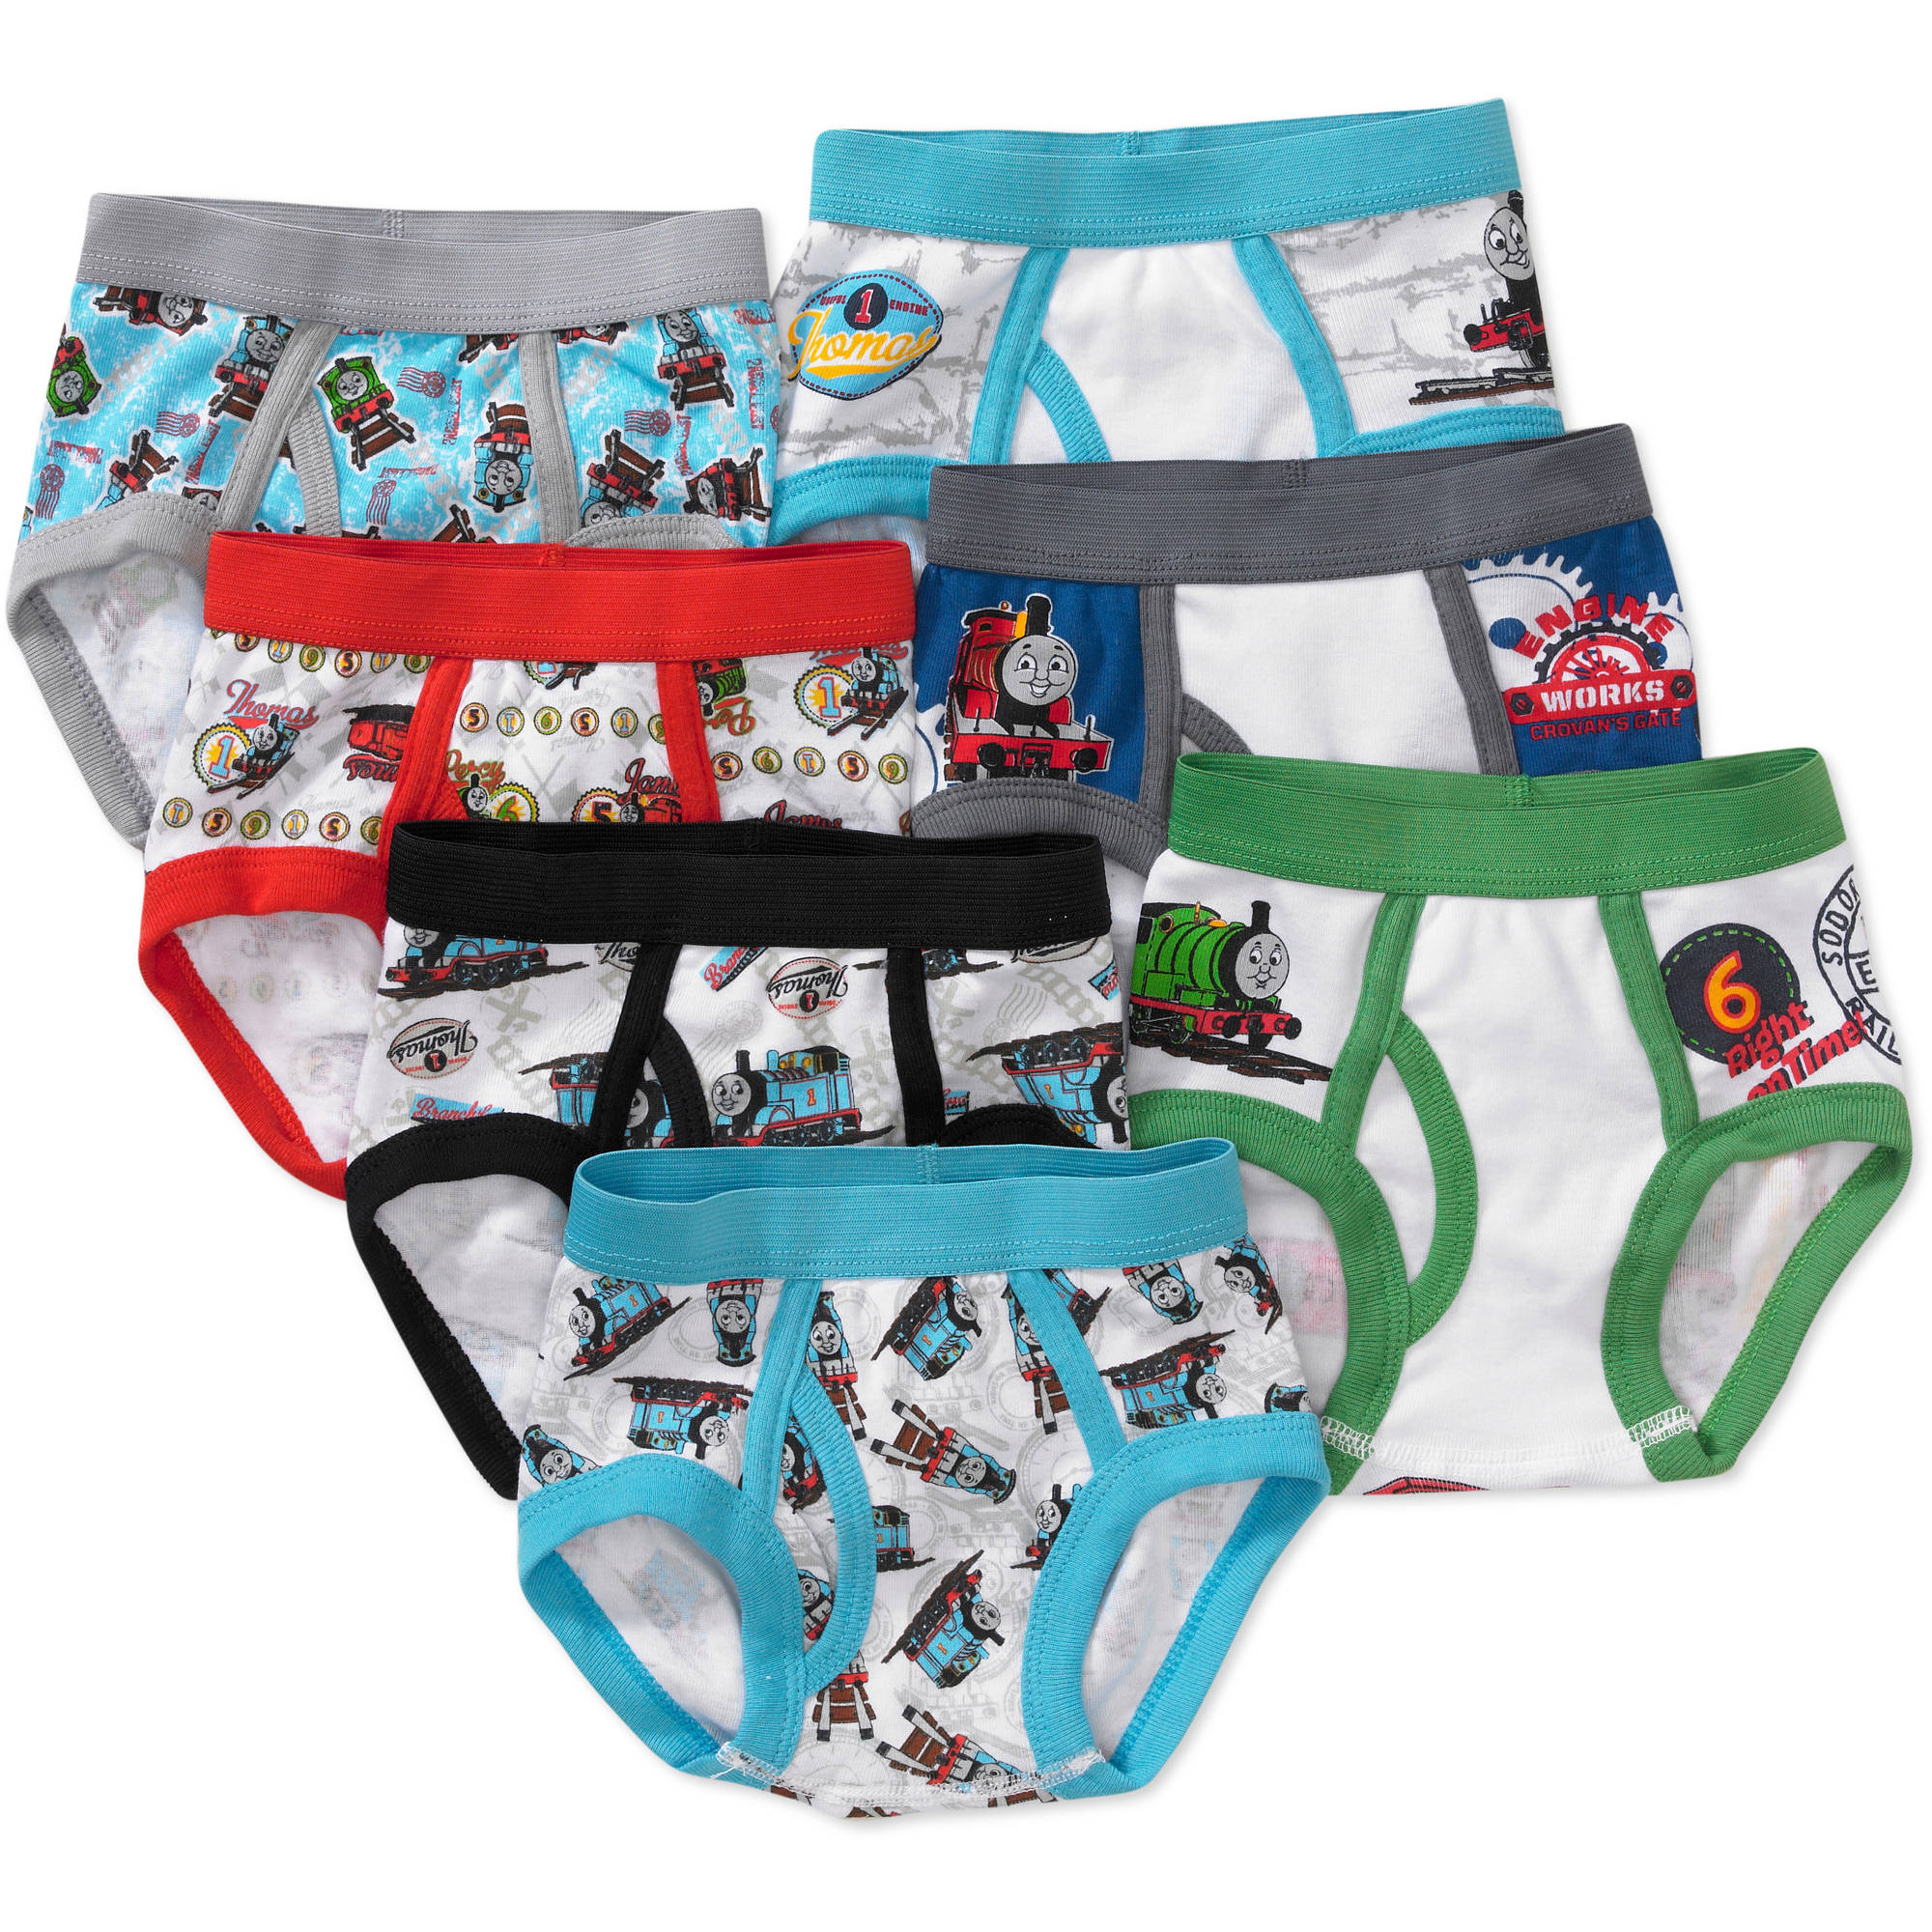 Toddler Boys' Thomas Underwear, 7-Pack